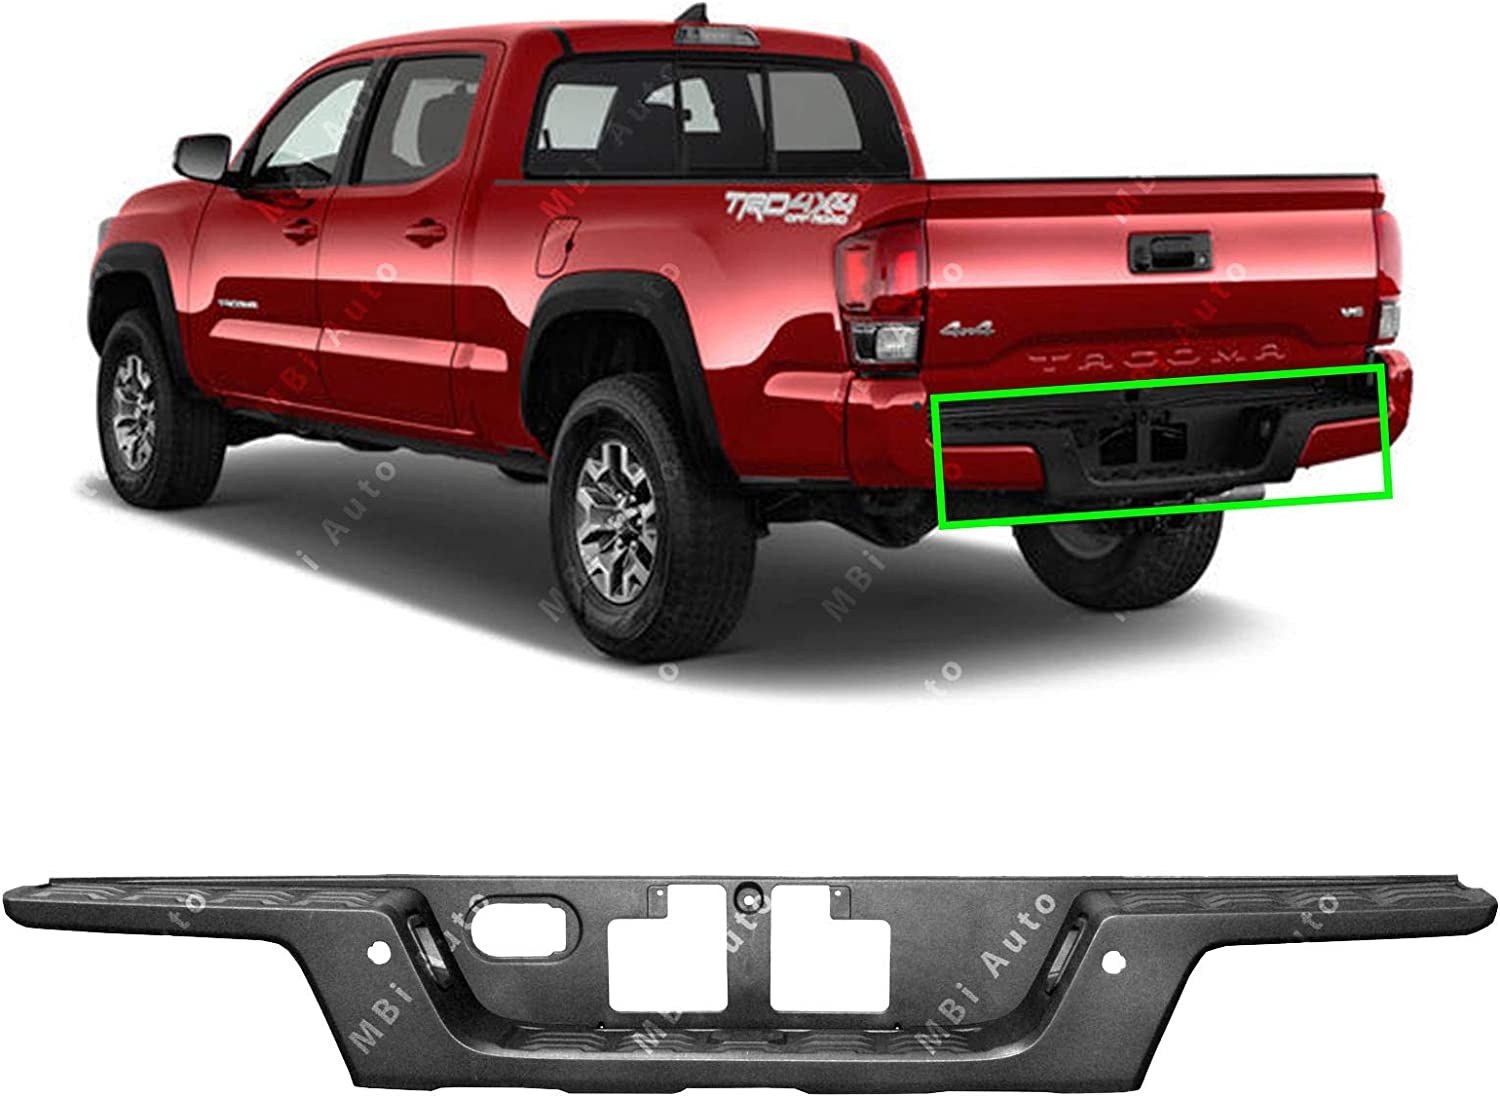 Textured TO1191109 MBI AUTO Rear Bumper Step Pad for 2016-2019 Toyota Tacoma w//Park Assist 16-19